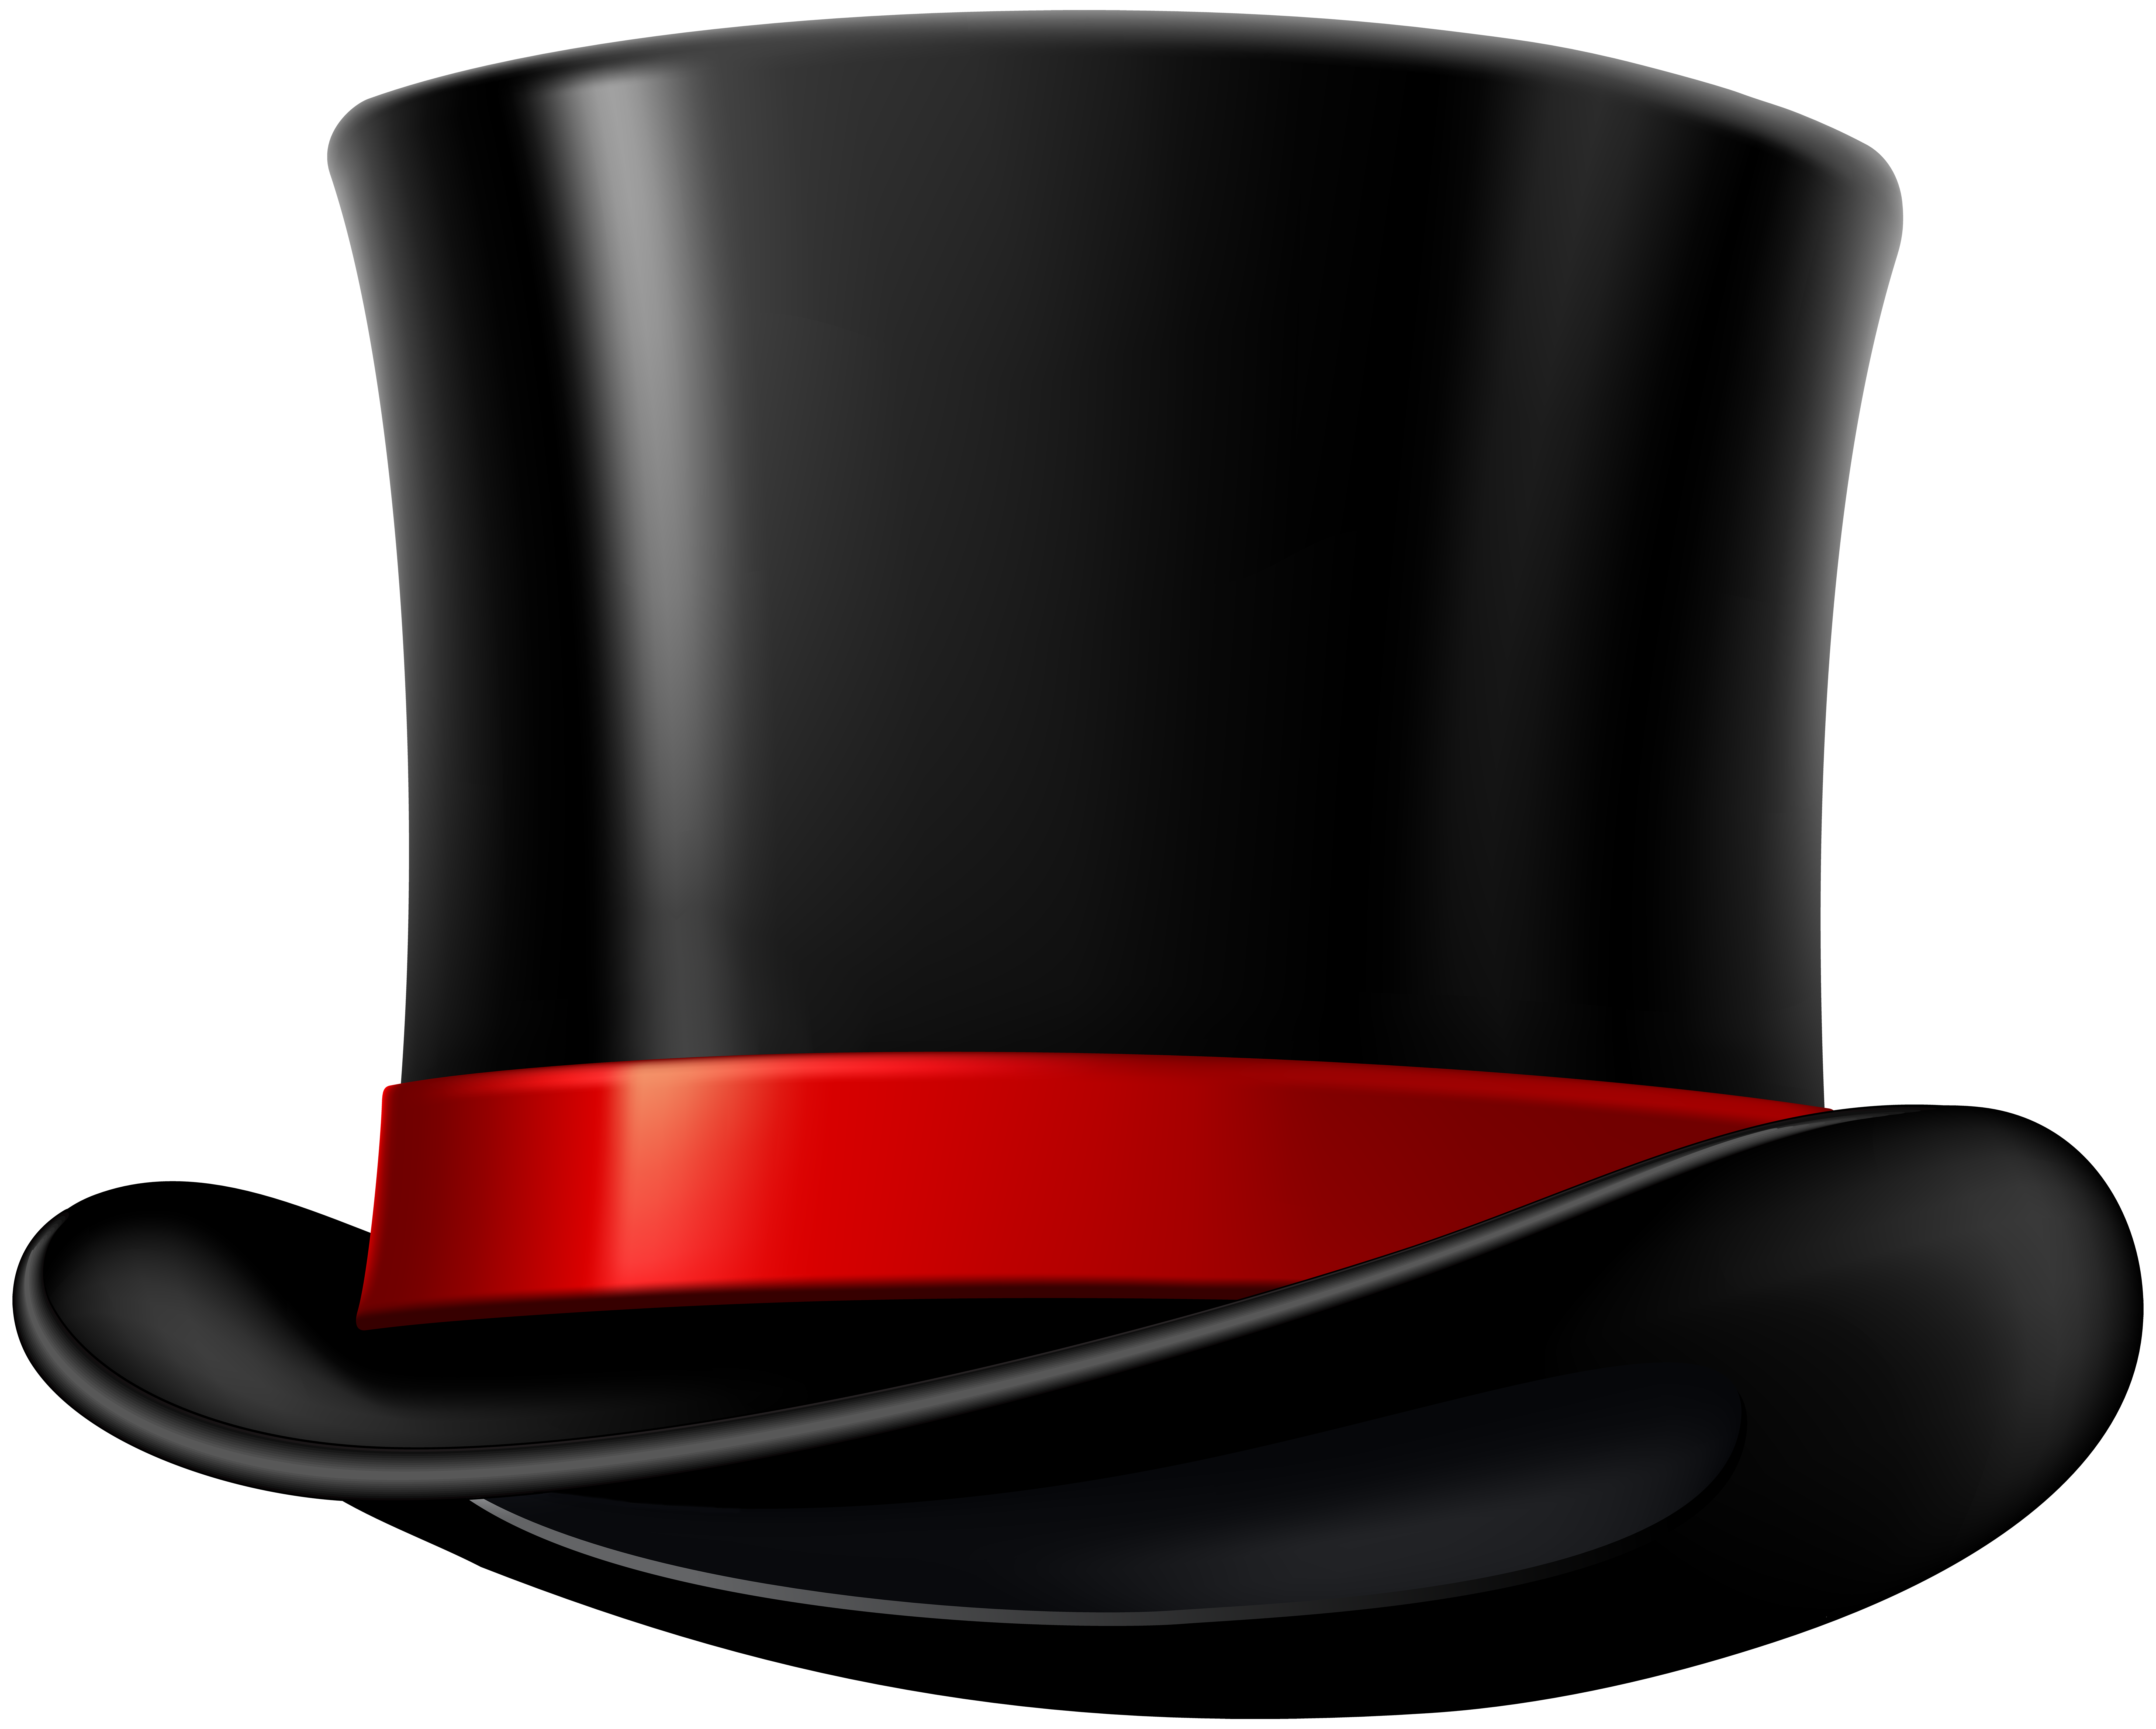 Top hat clipart blue ribbon vector library stock Top Hat Transparent Image | Gallery Yopriceville - High ... vector library stock